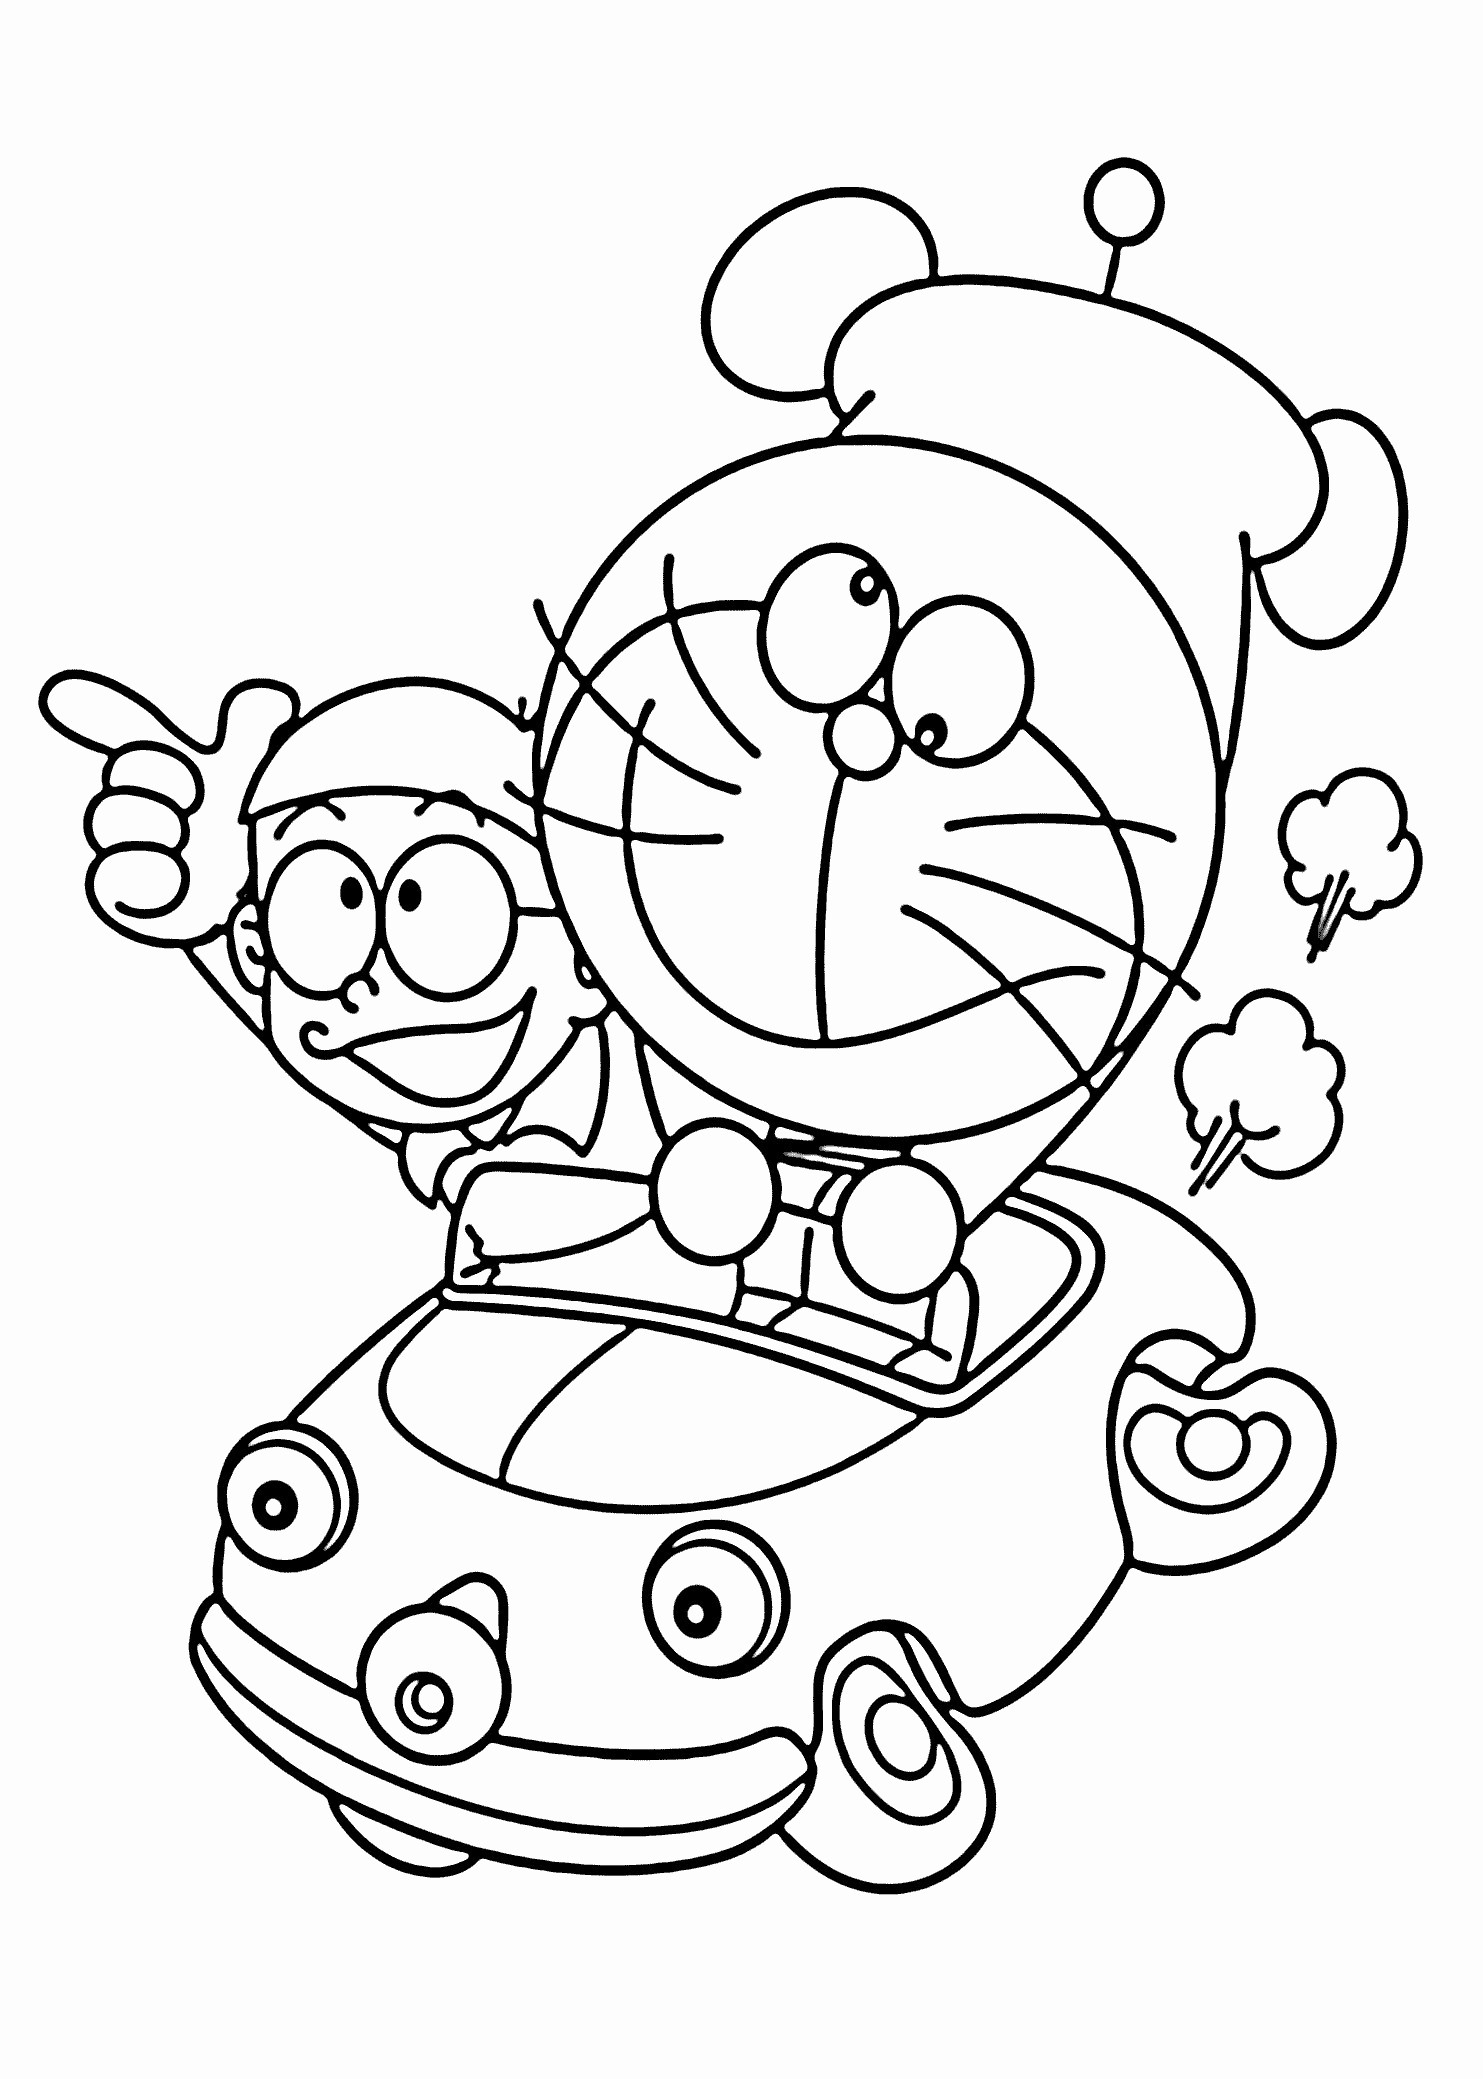 library coloring pages Collection-cuties coloring pages 16-b